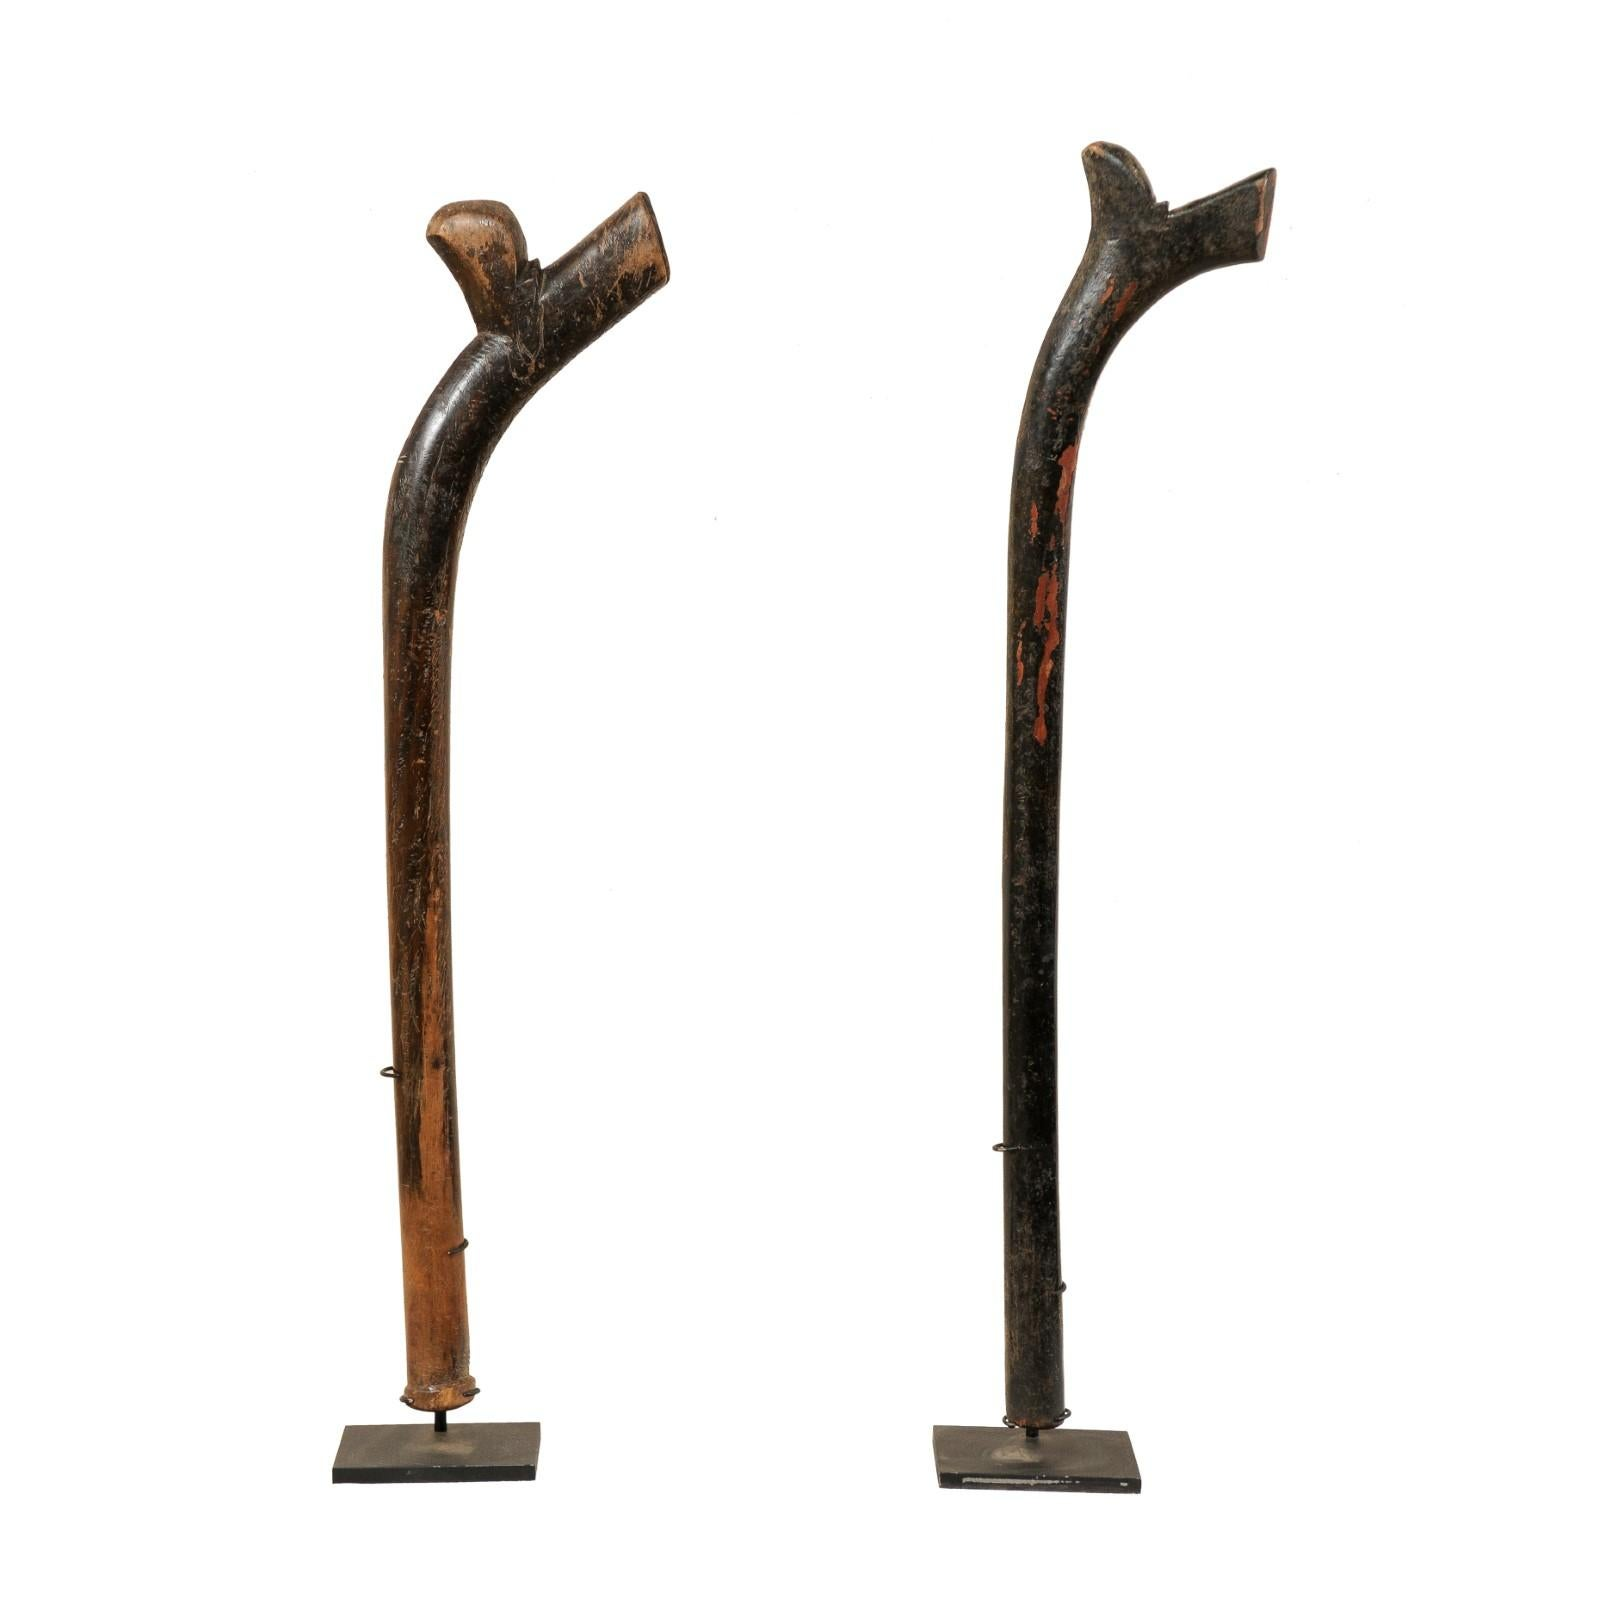 Pair of Kiakavo Wooden Clubs from the Fiji Islands on Custom Stands